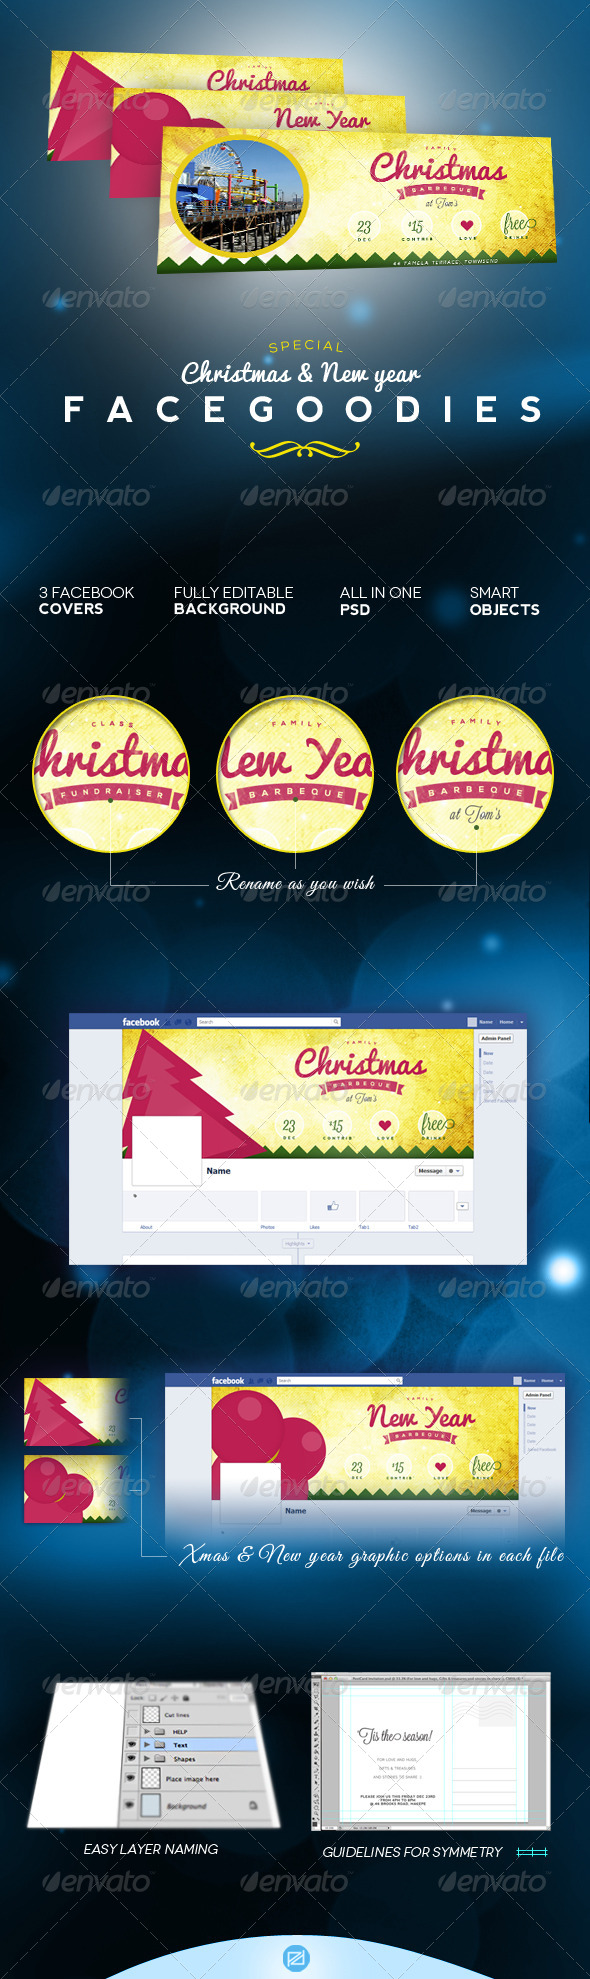 GraphicRiver Christmas & New Year s Facebook Event Cover 6177960